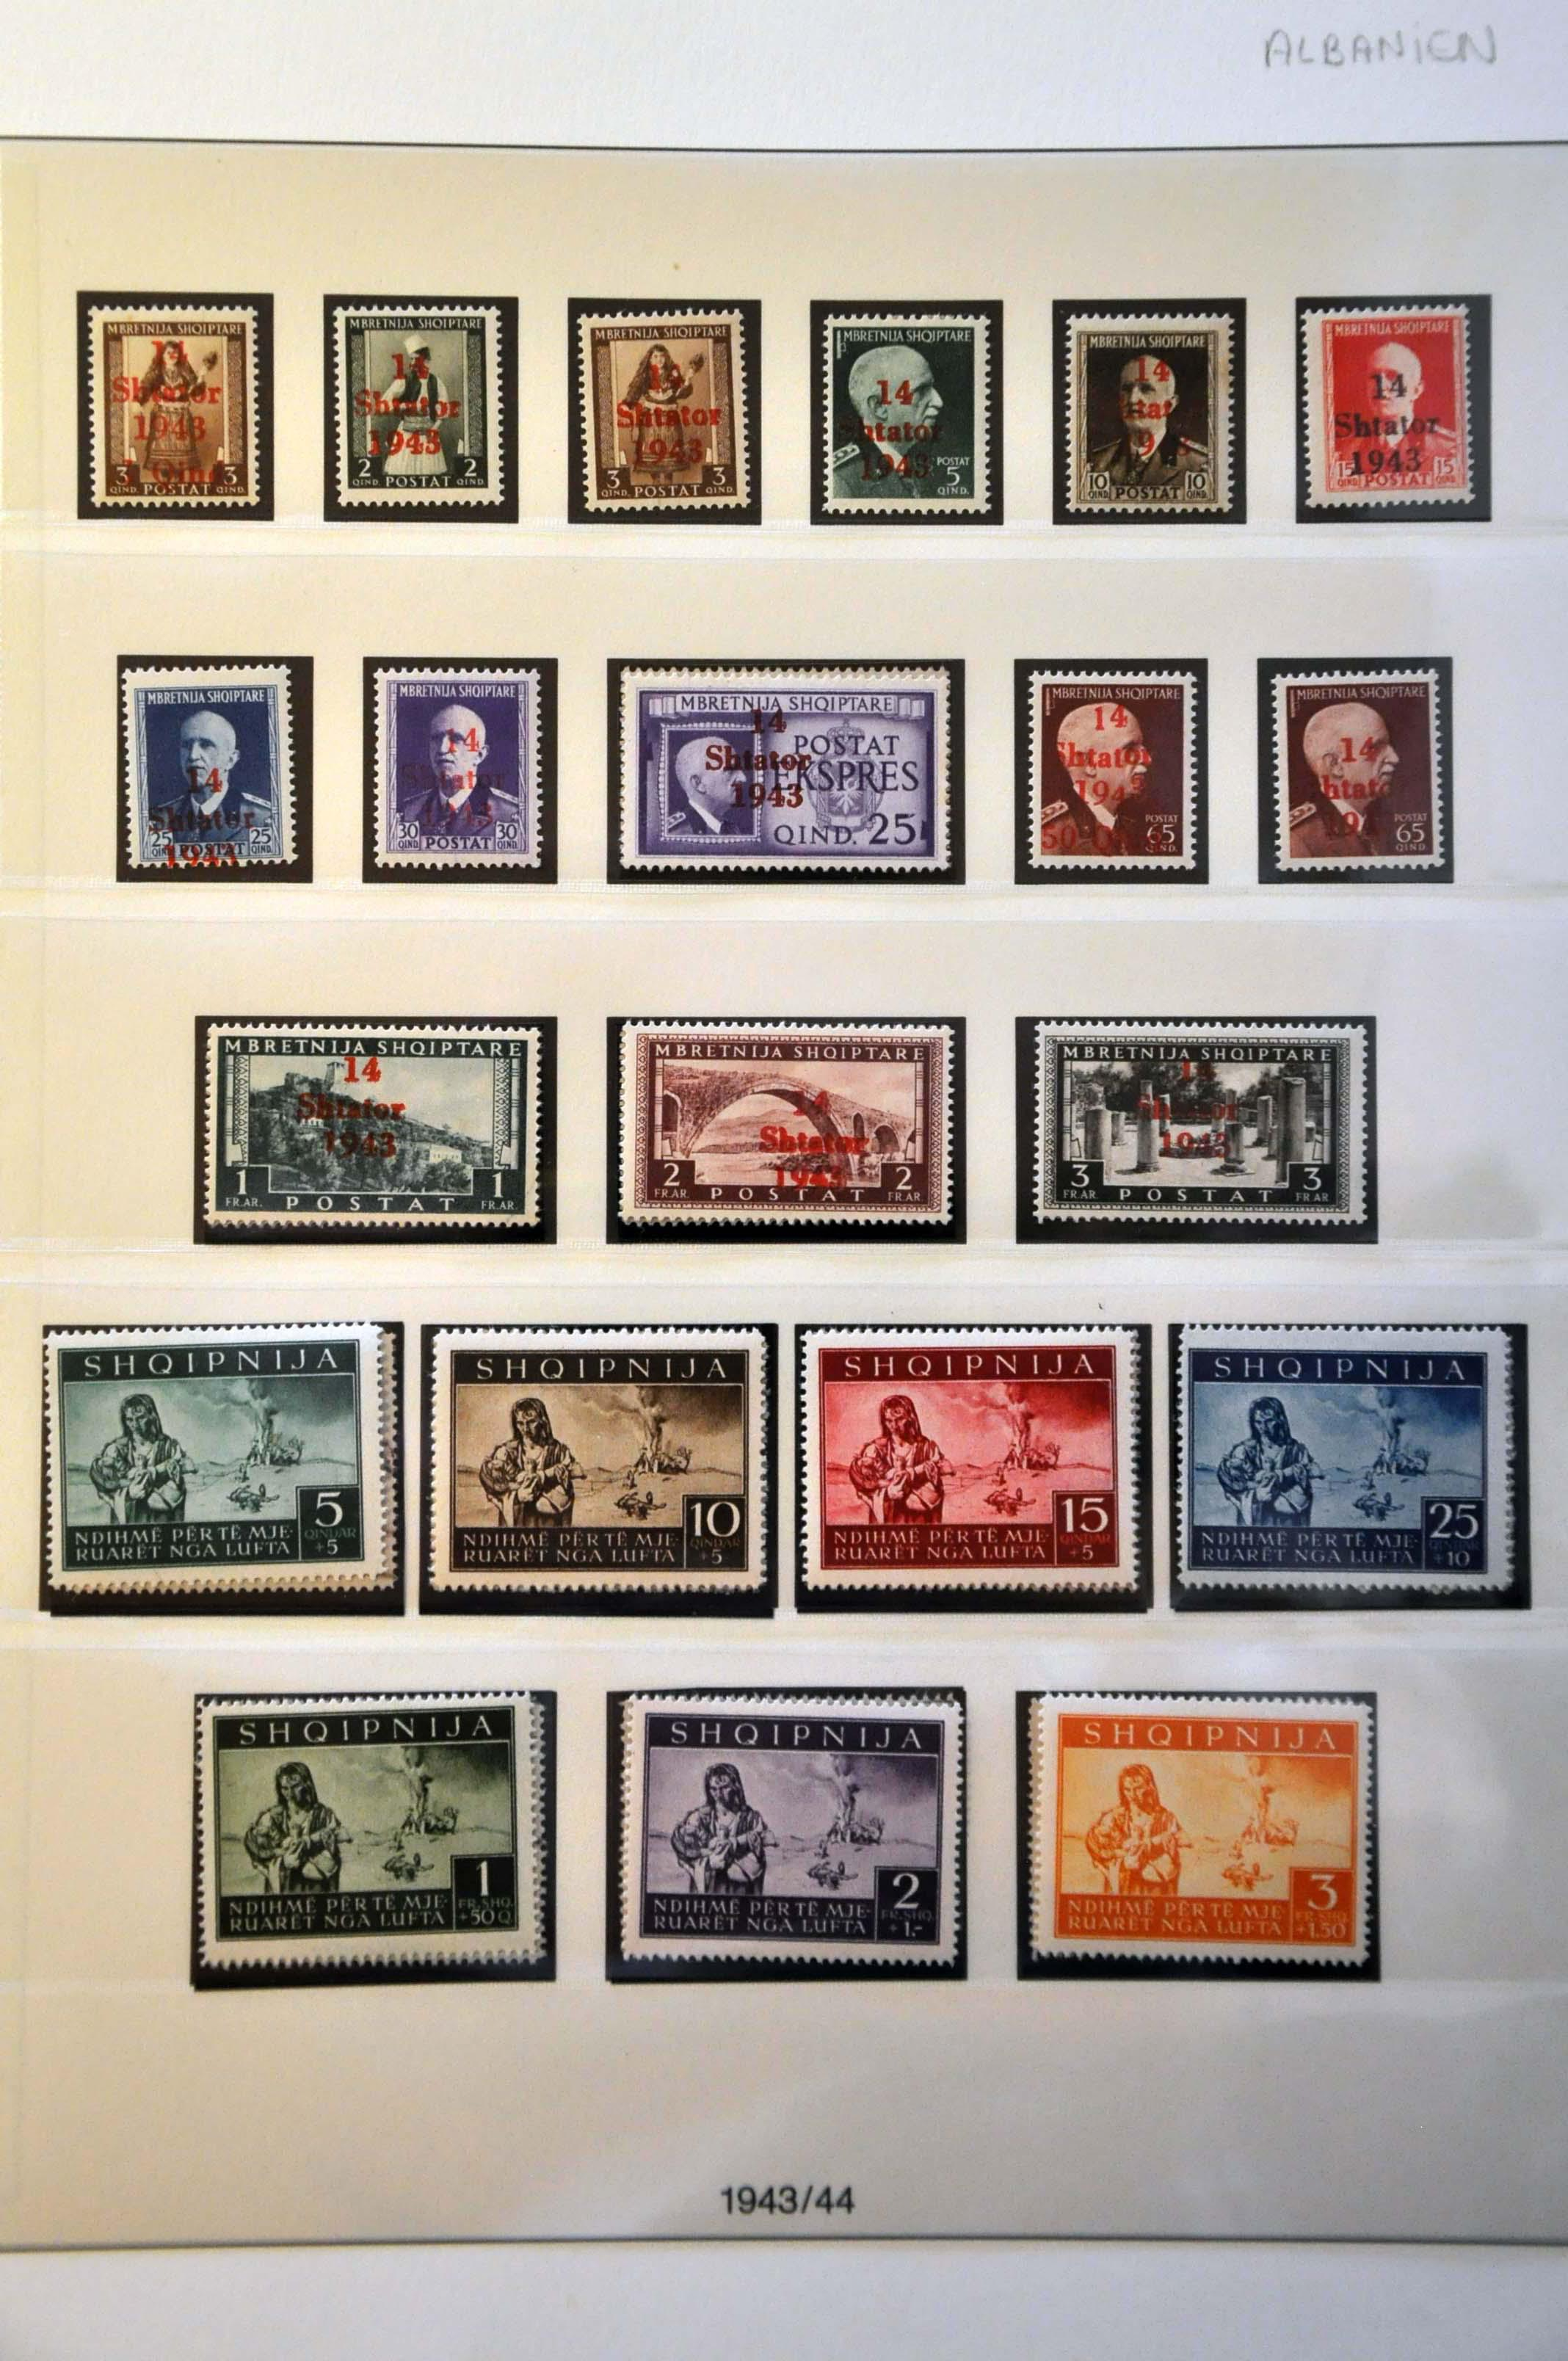 Lot 635 - Germany and former colonies Germany Occupation WW II -  Corinphila Veilingen Auction 244 -Netherlands and former colonies, WW2 Postal History, Bosnia, German and British colonies, Egypt. - Day 1